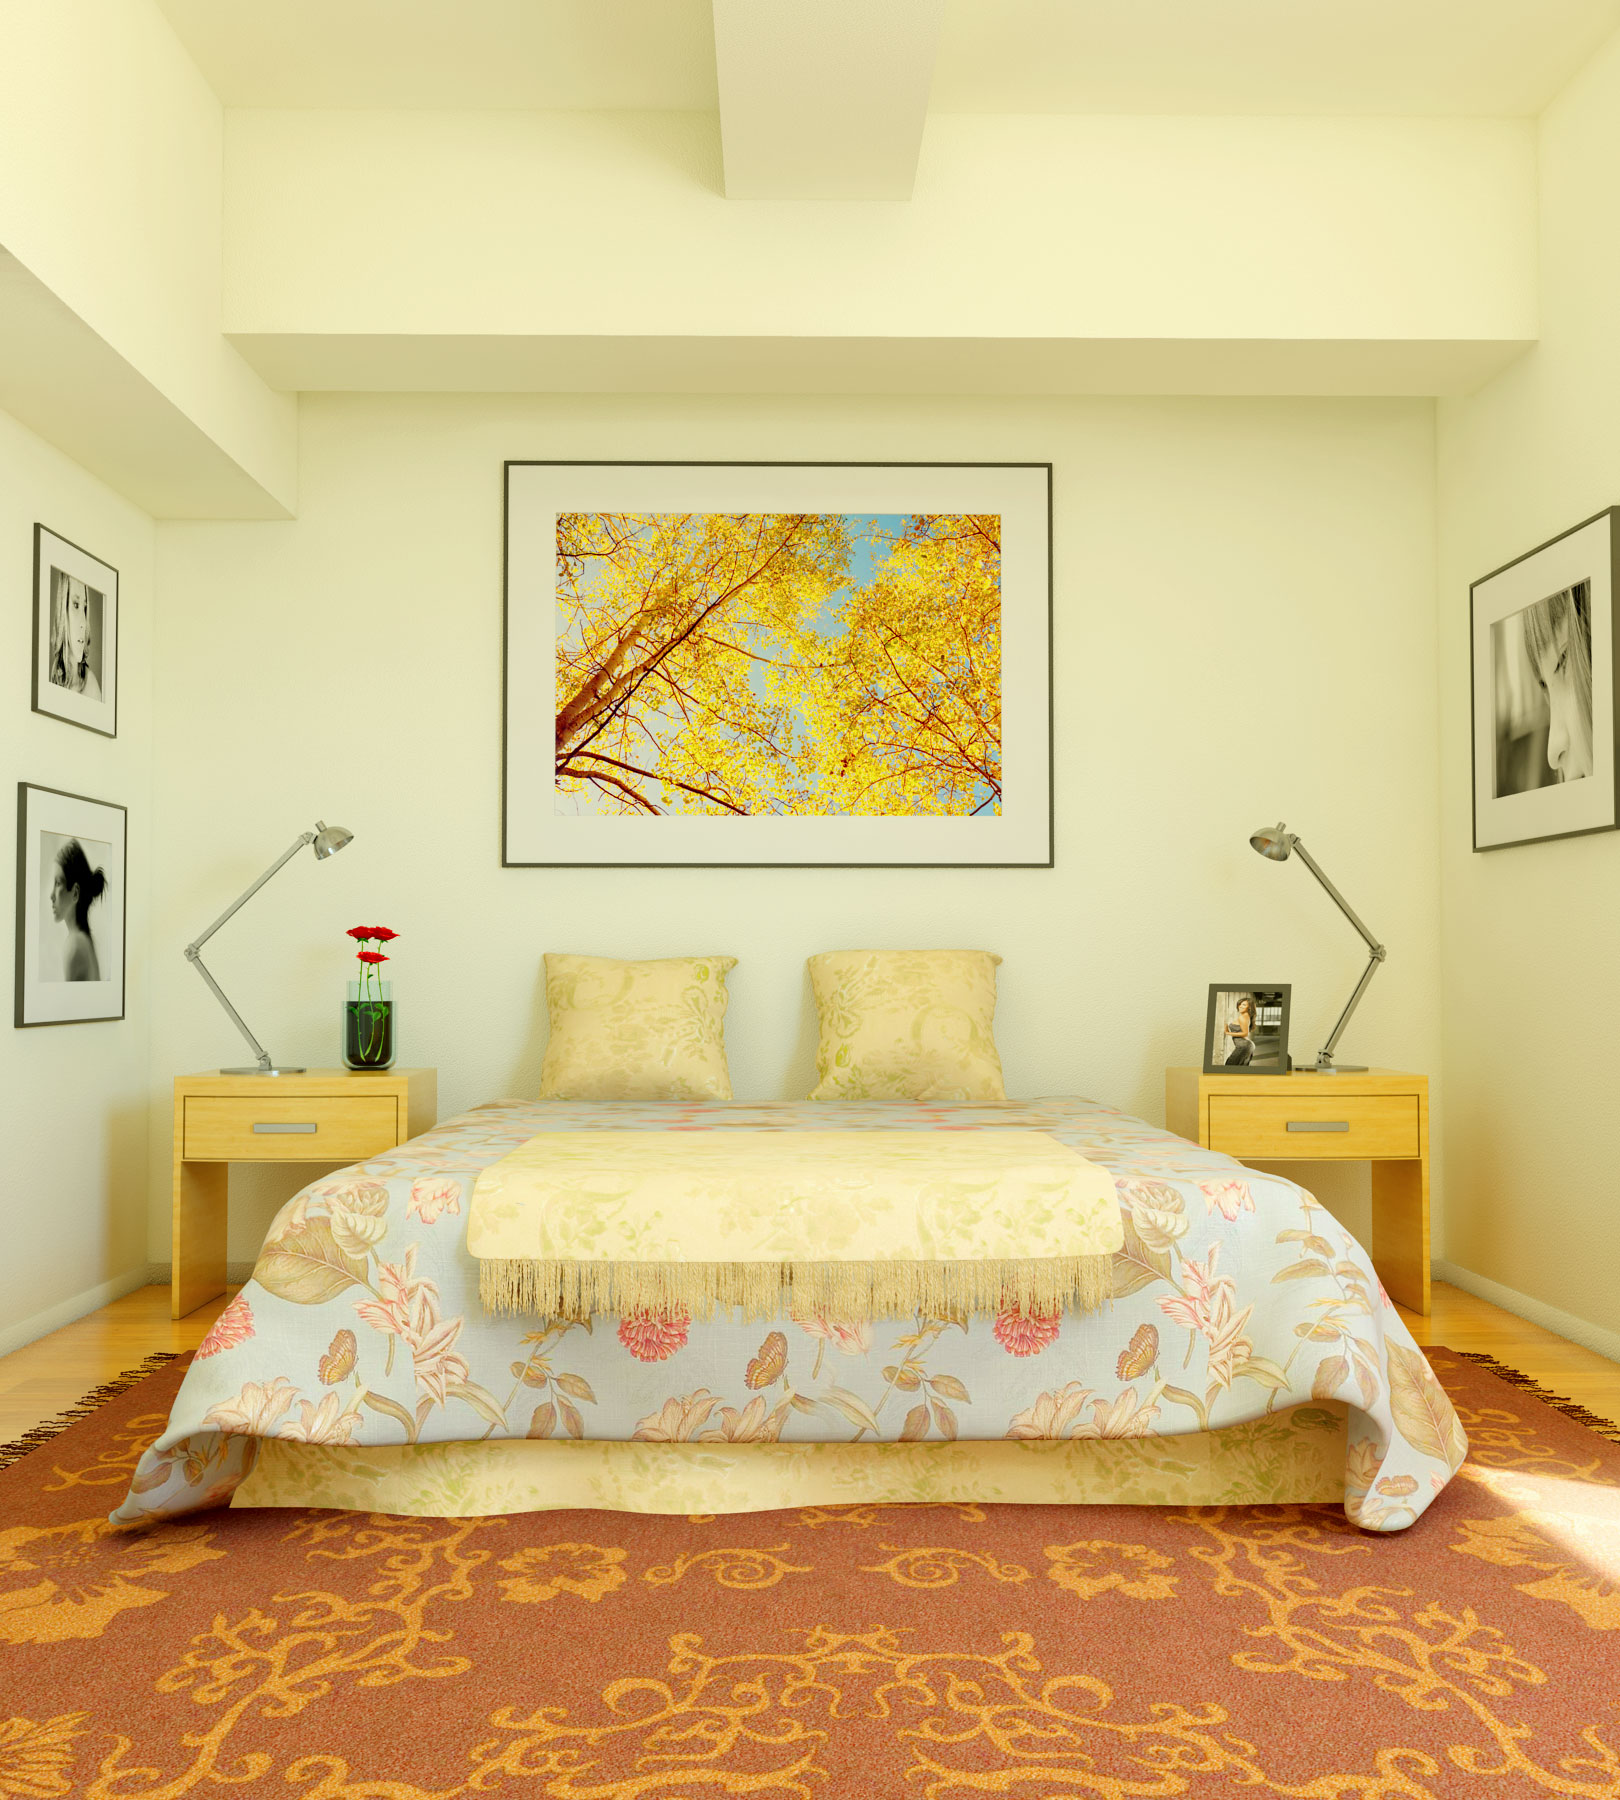 Remarkable Wall Colors Idea Small Bedrooms 1620 x 1800 · 522 kB · jpeg